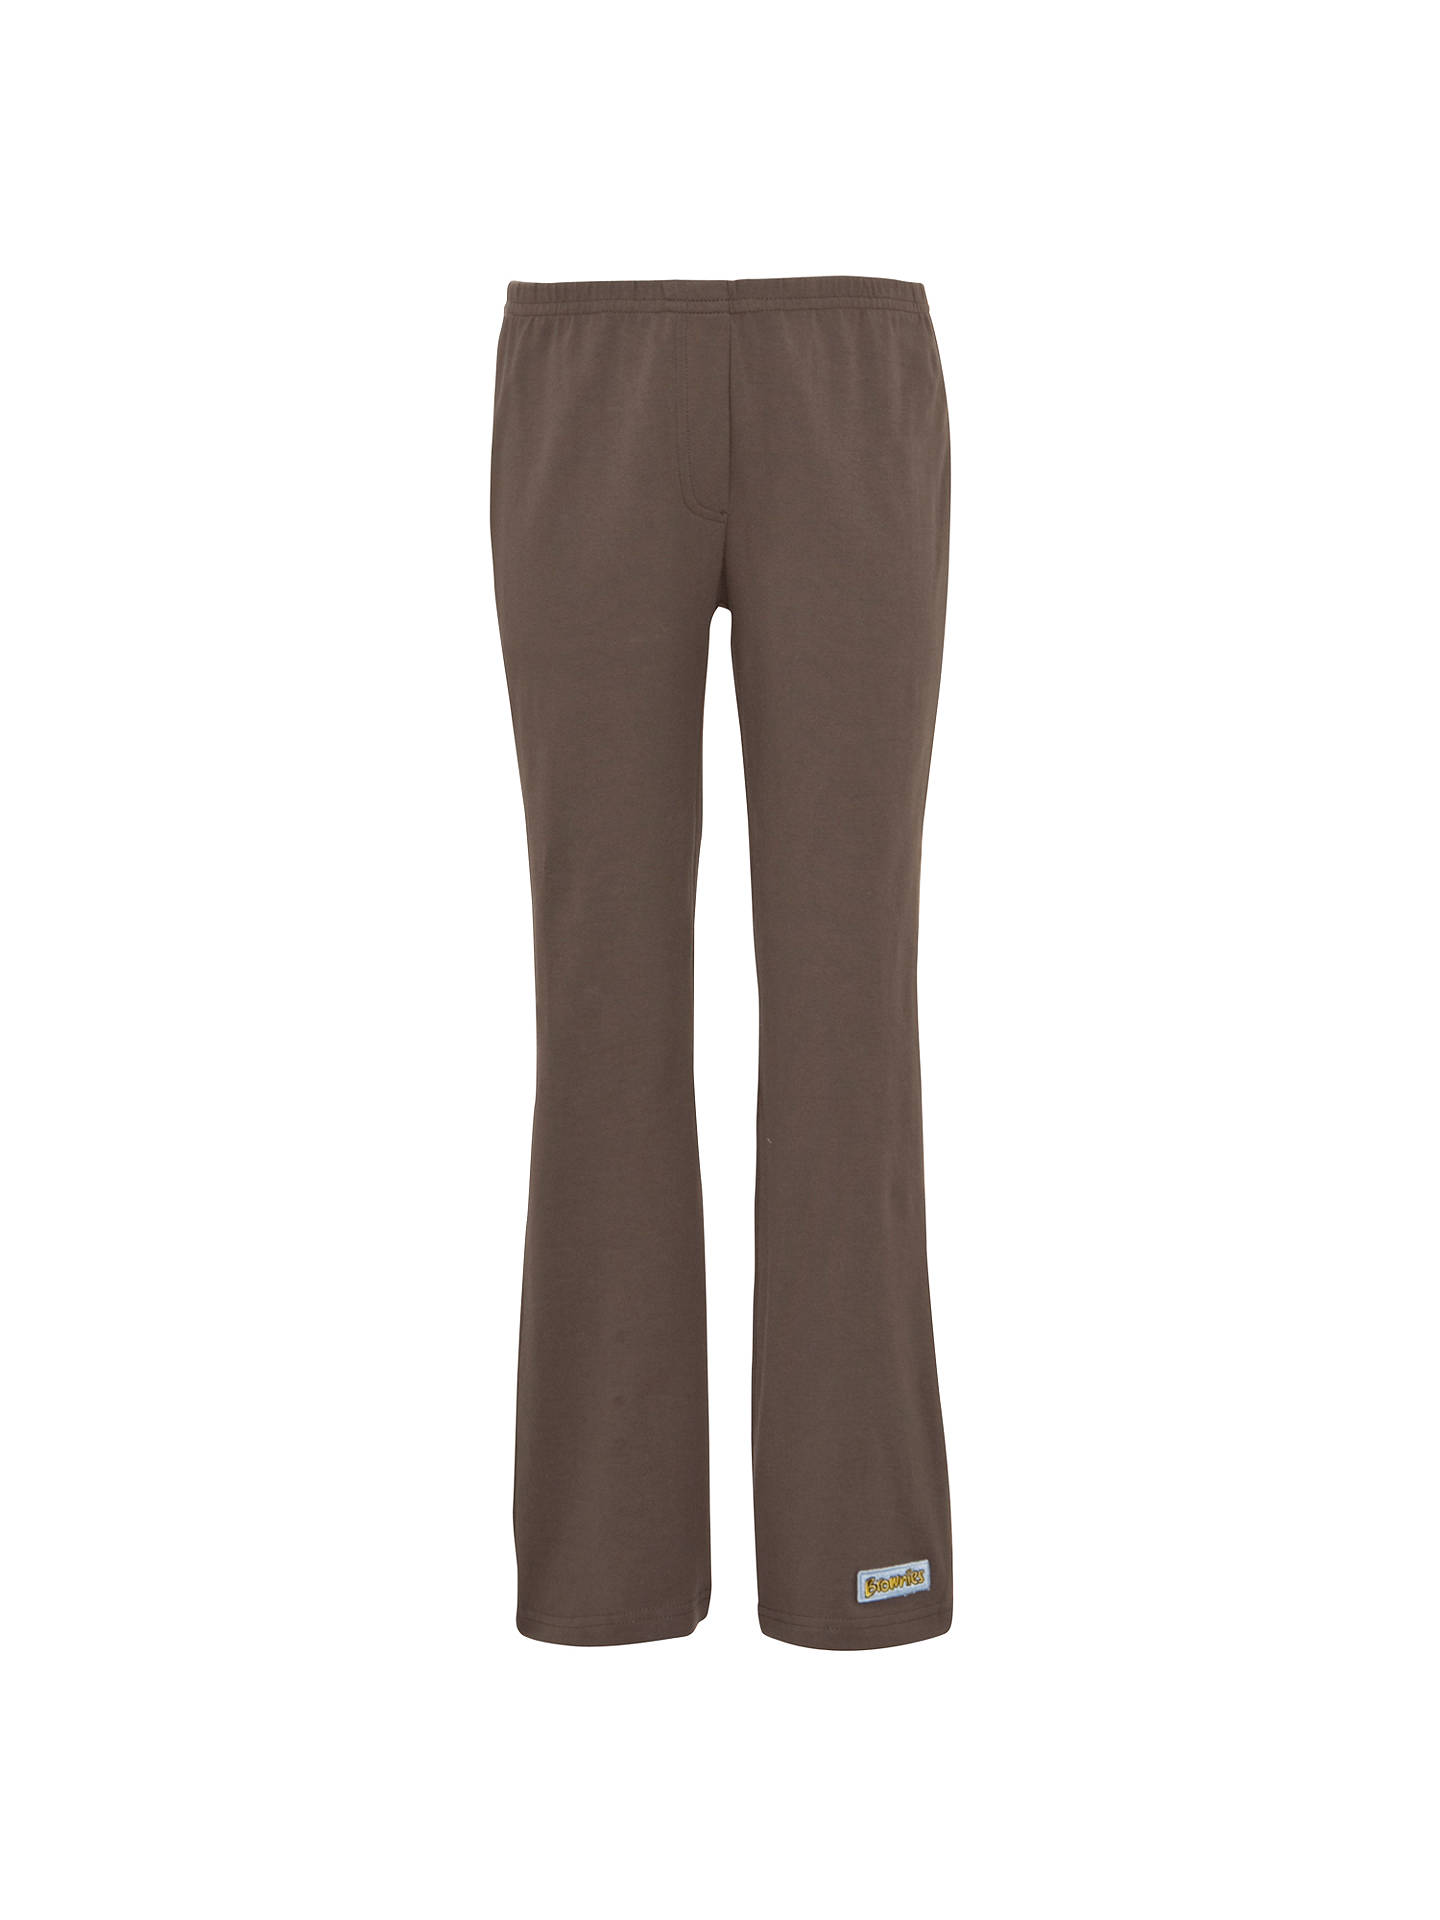 "Buy Brownies Uniform Leggings, Brown, Waist 30"" Online at johnlewis.com"